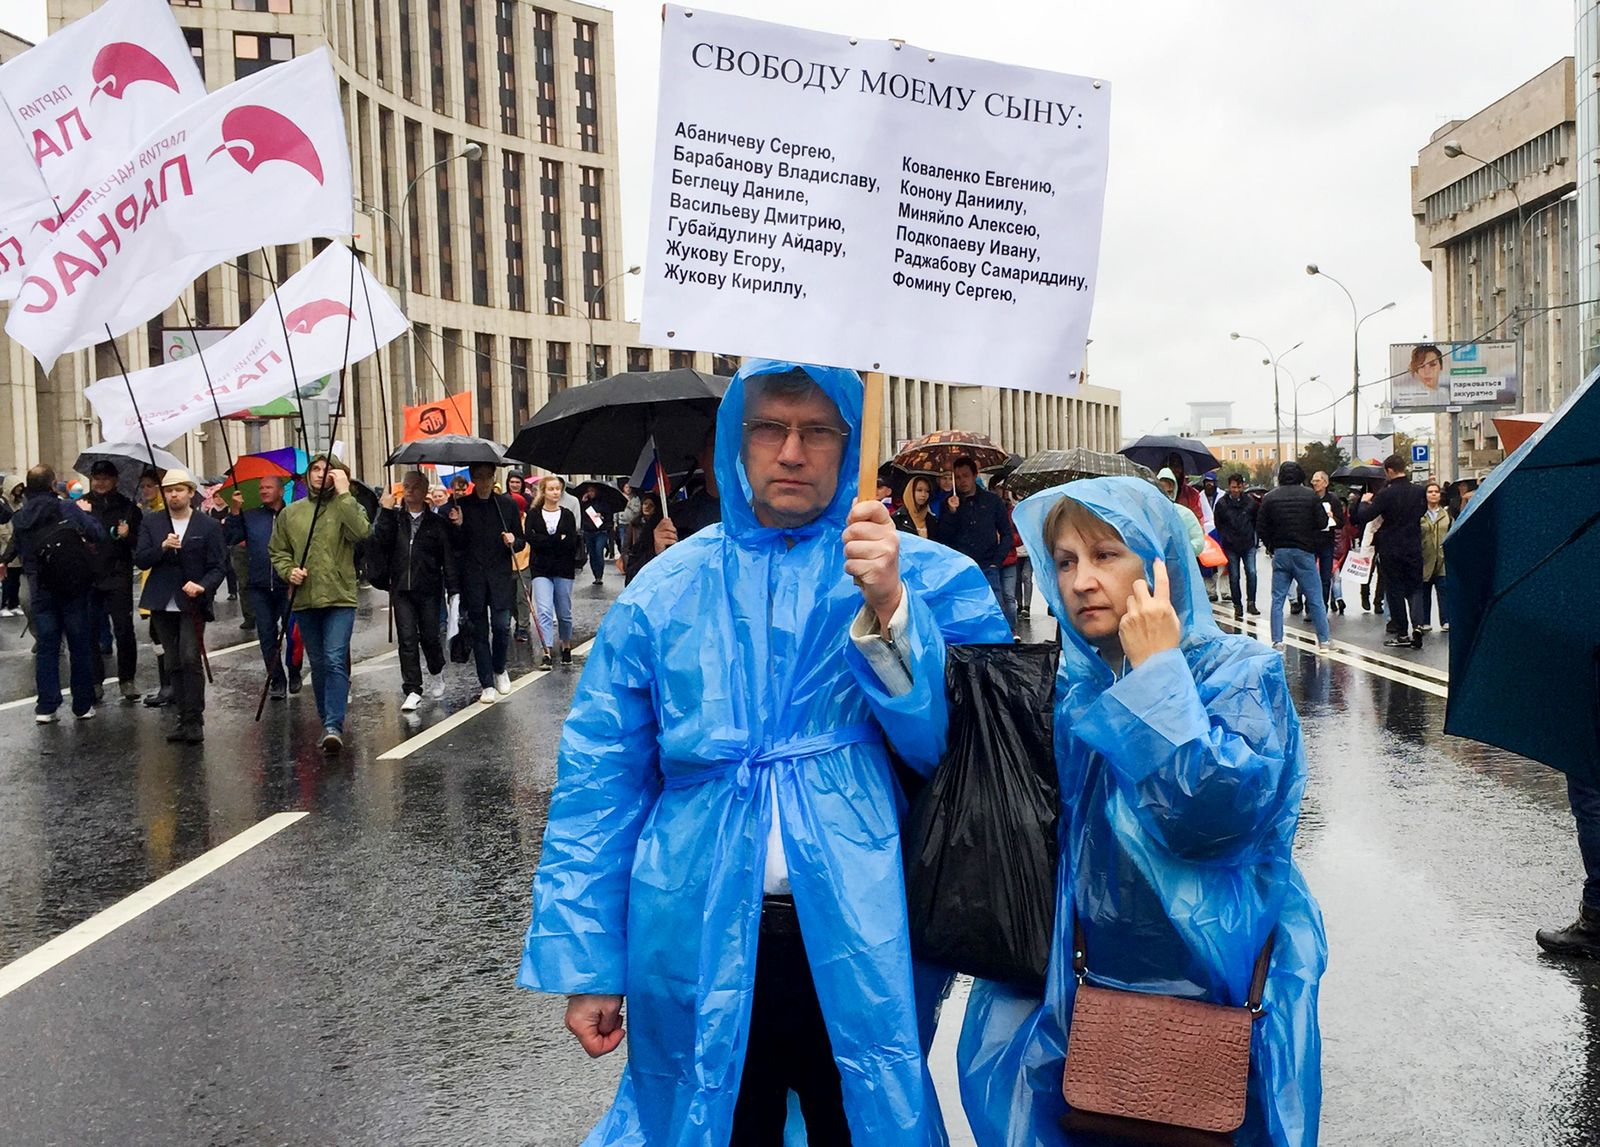 "In this photo taken on Aug. 10, 2019, Vyacheslav Abanichev and Alisa Abanicheva, parents of Sergei Abanichev charged with rioting connected to an opposition rally, hold a poster saying ""Free My Son"" with the names of all those arrested as they attend an opposition rally in Moscow, Russia.{ } (Daria Zelenaya/Novaya gazeta via AP)"